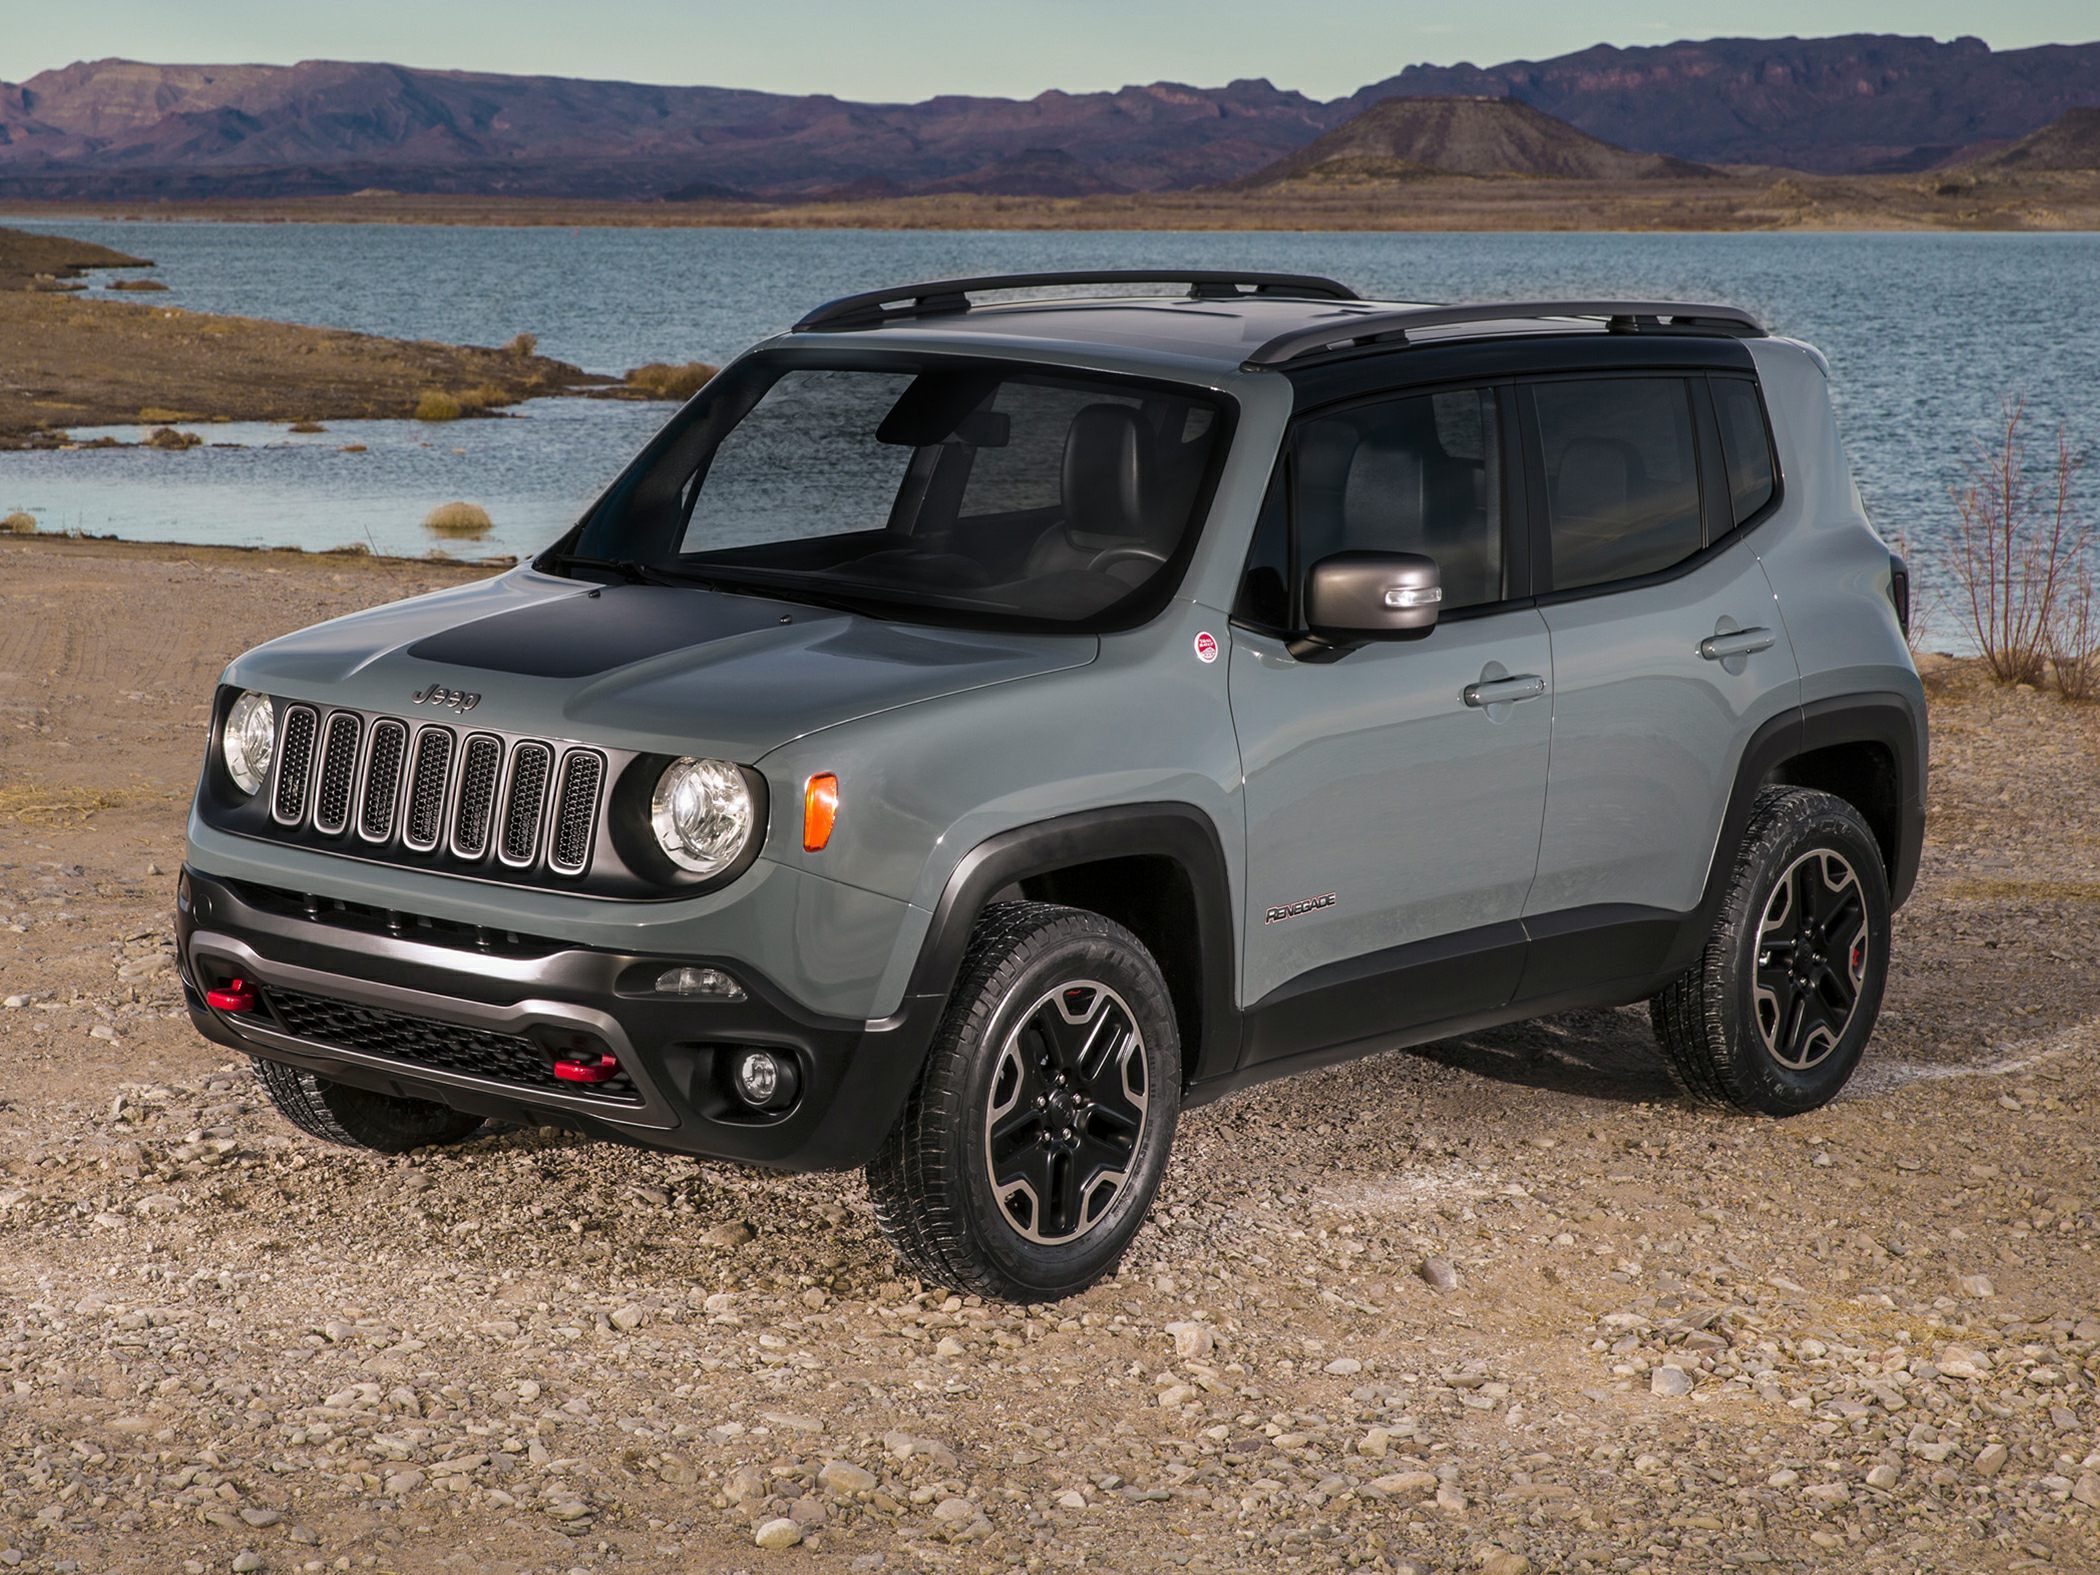 2017 Jeep Renegade Specs Safety Rating & MPG CarsDirect